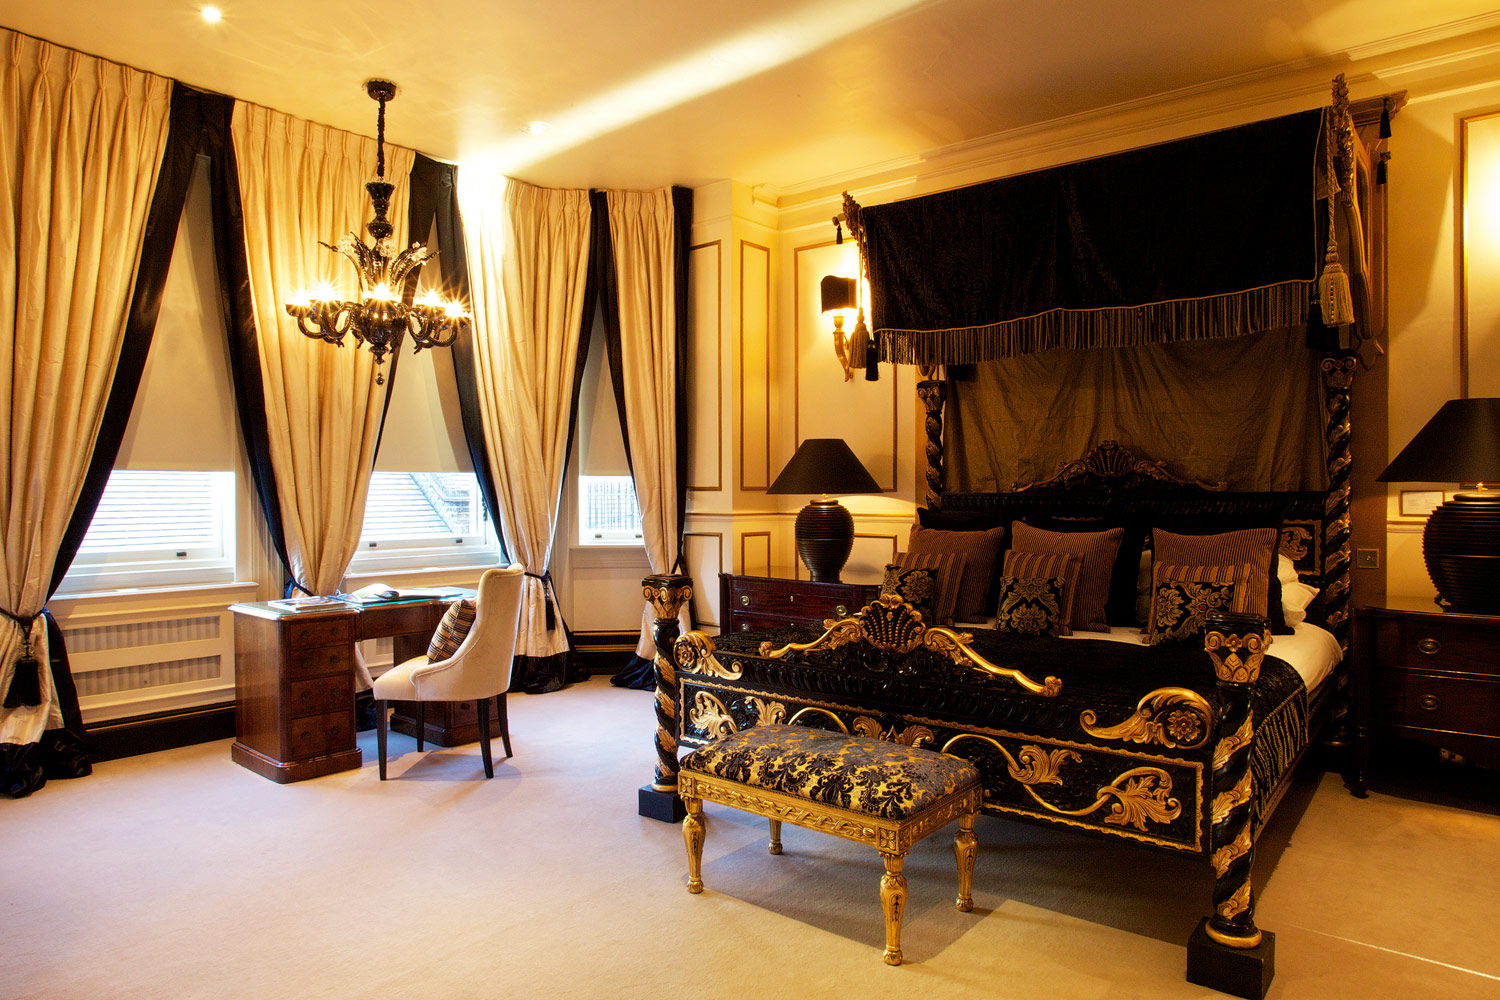 Modern Day Majesty At 11 Cadogan Gardens In London